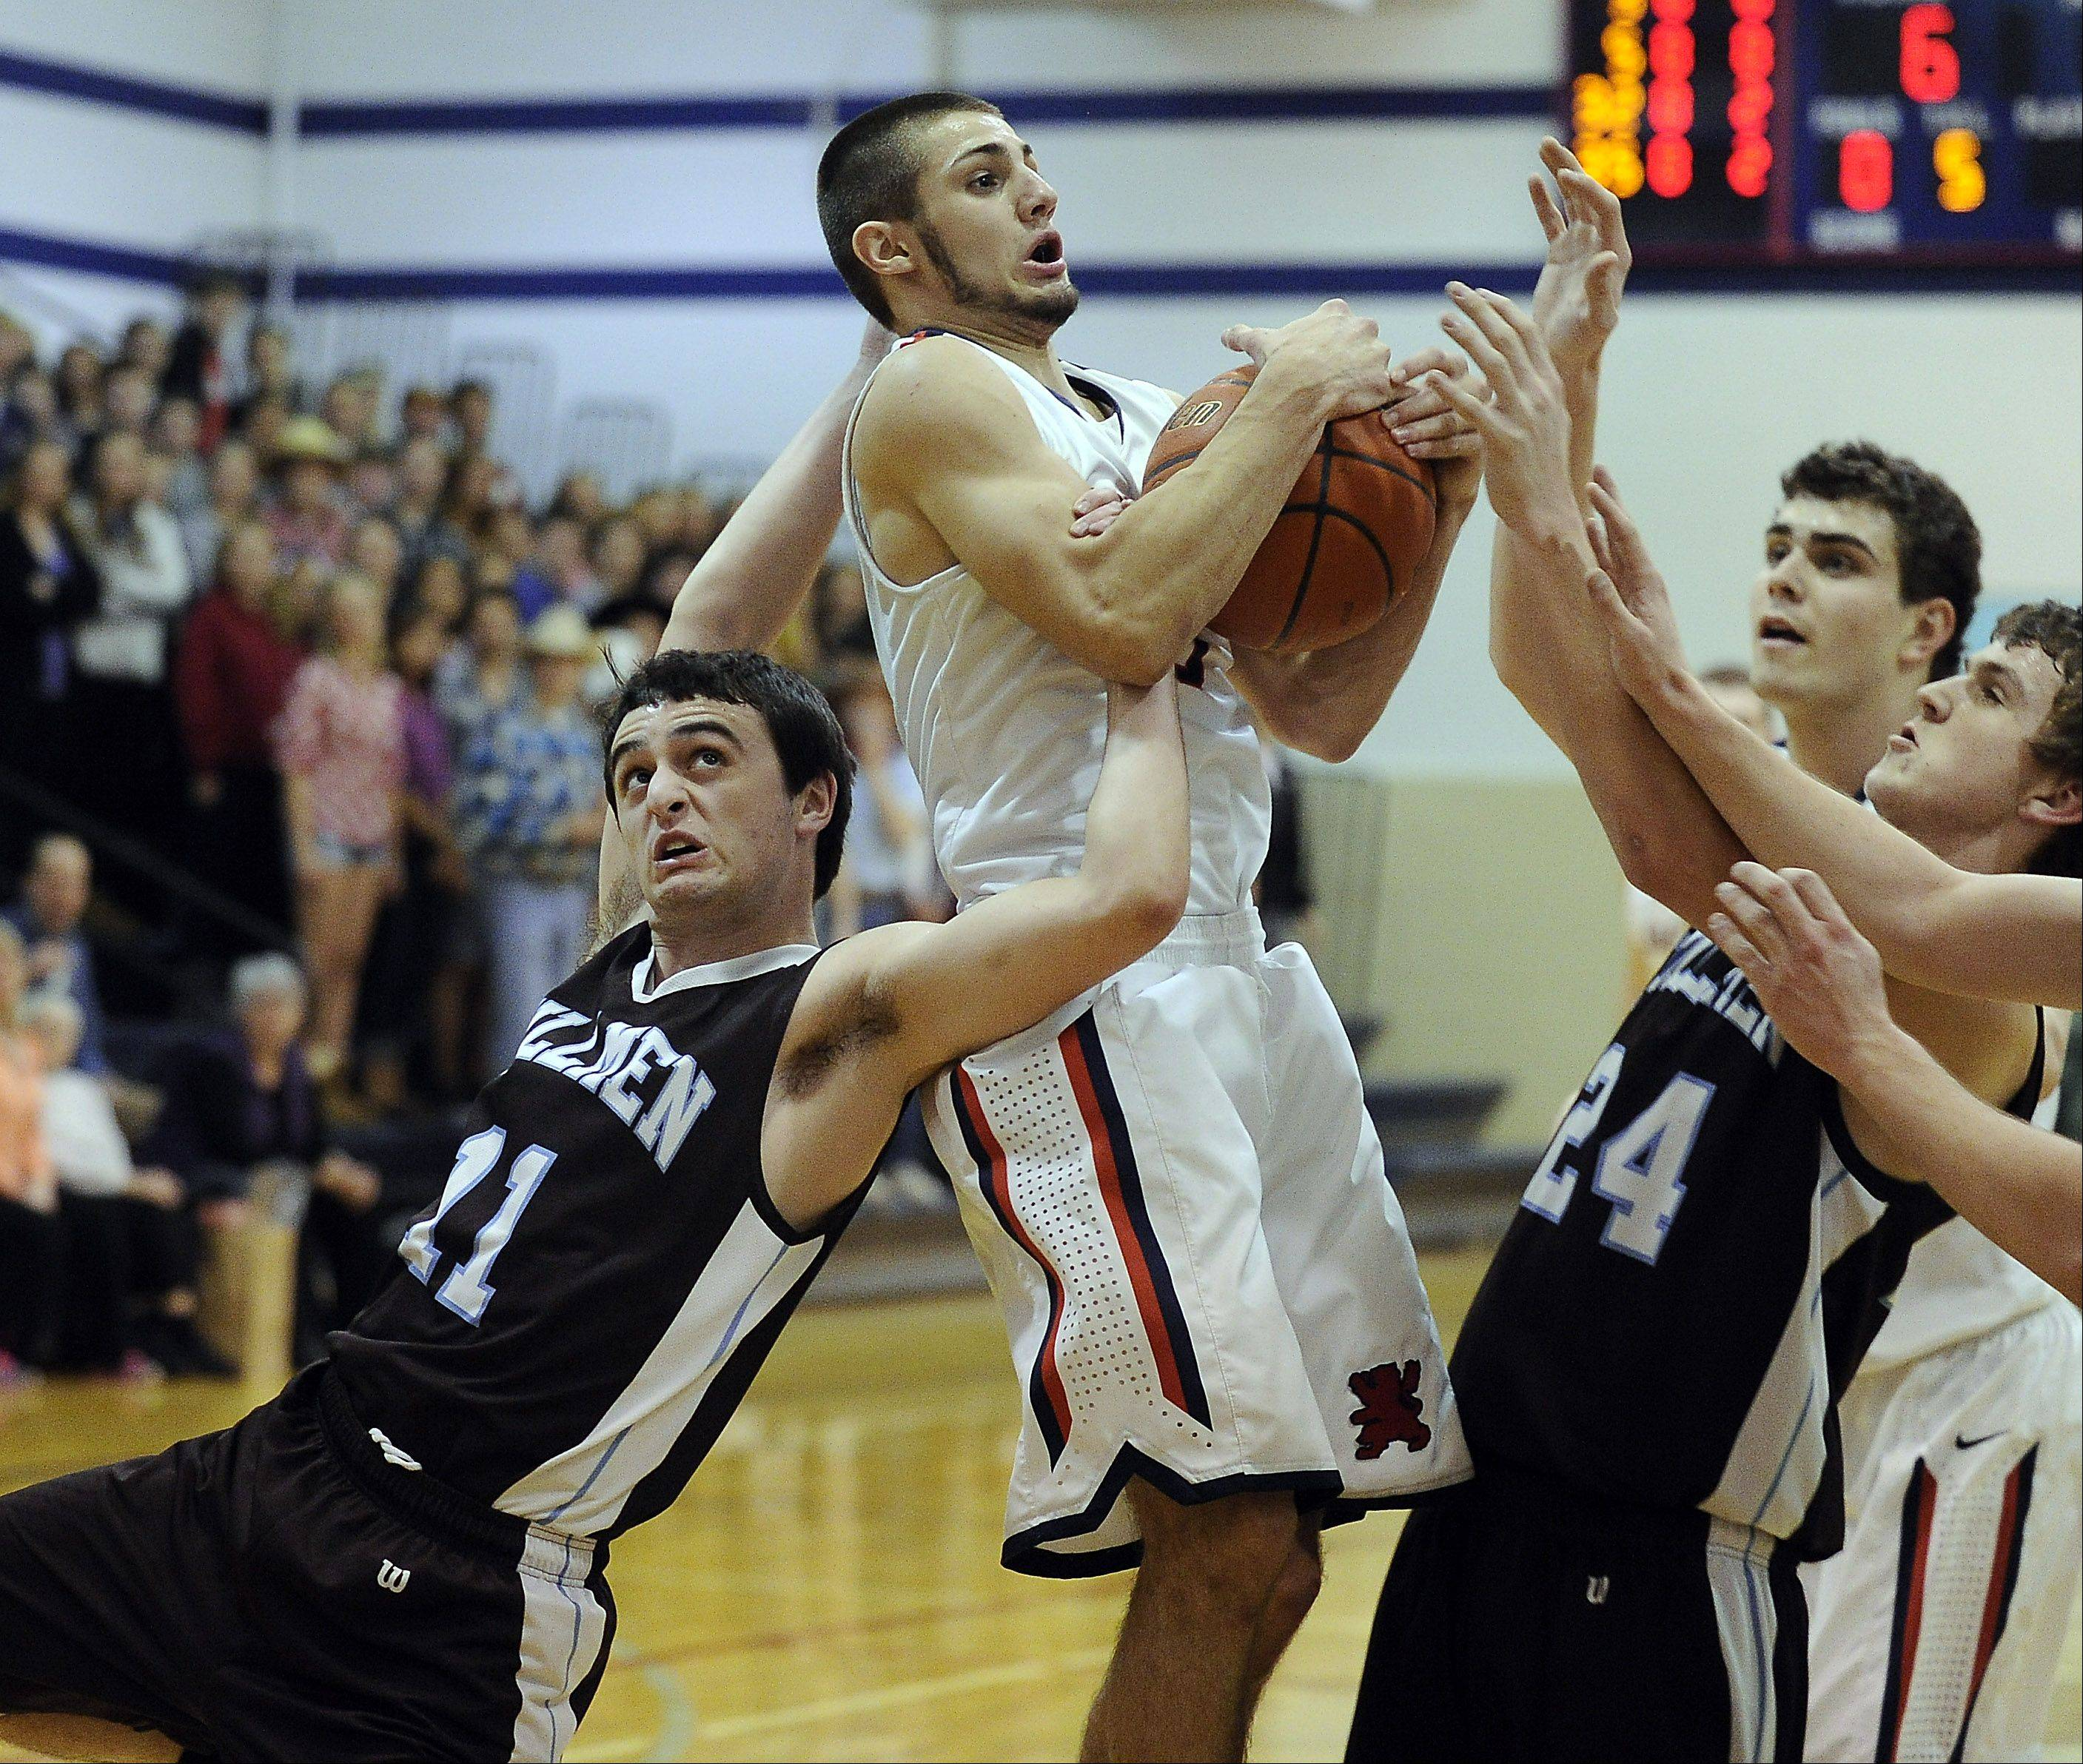 St. Viator's DJ Morris battles with Joliet Catholic's James Ragen for control of the ball Thursday at St. Viator.